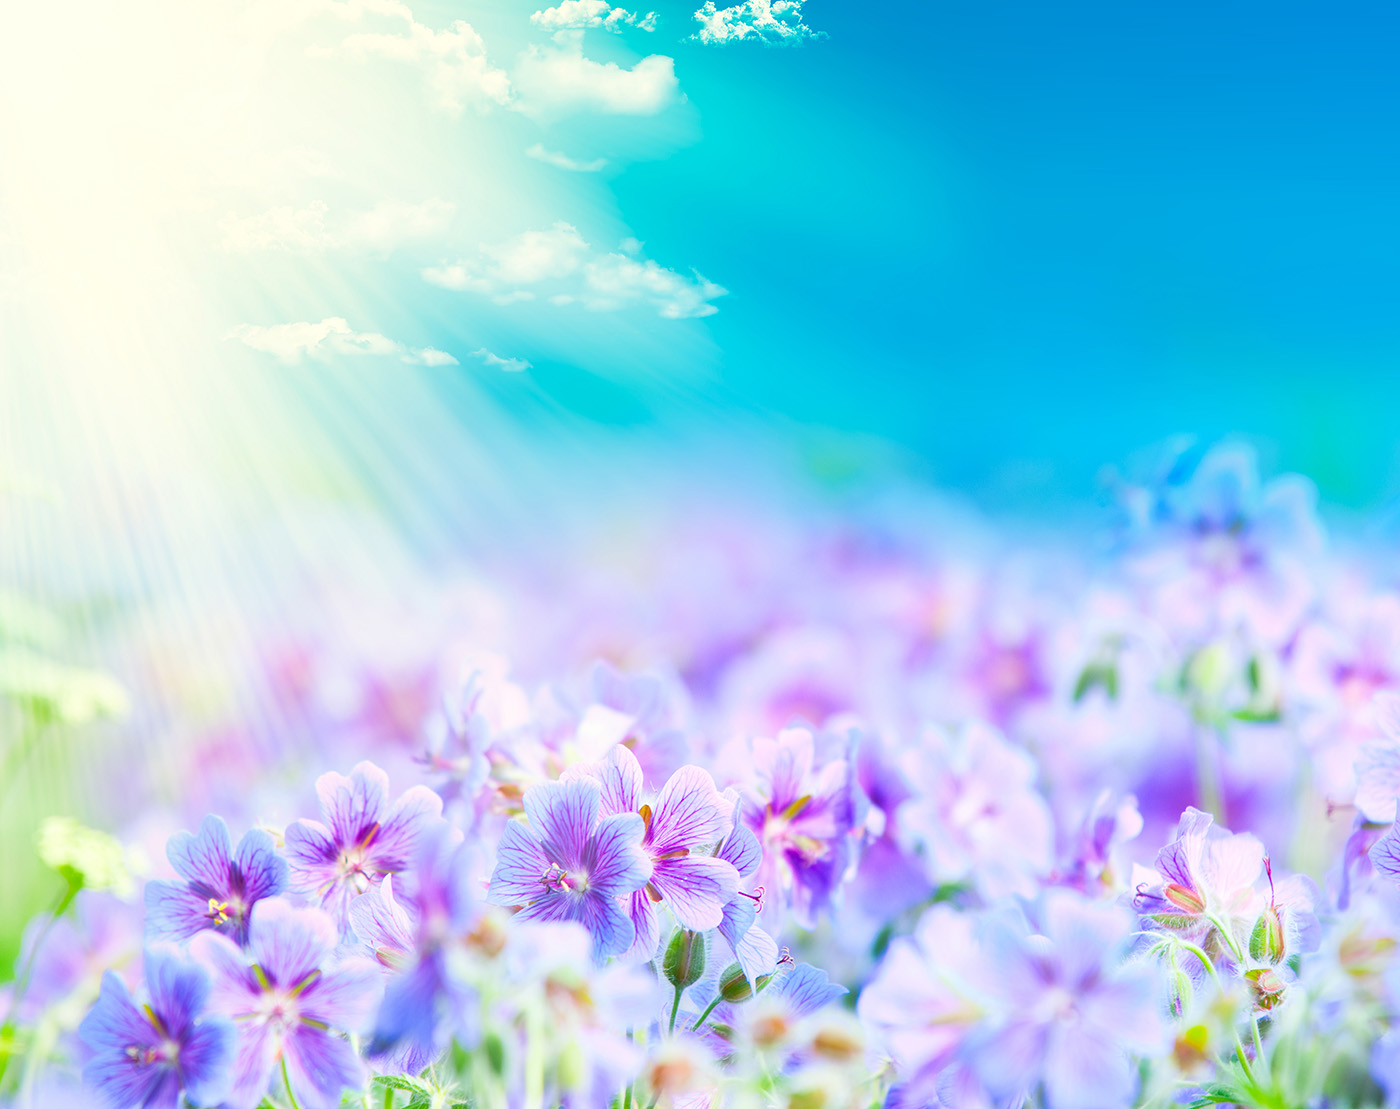 Flowers 50090 flower wallpapers flowers wallpaper blue sky with